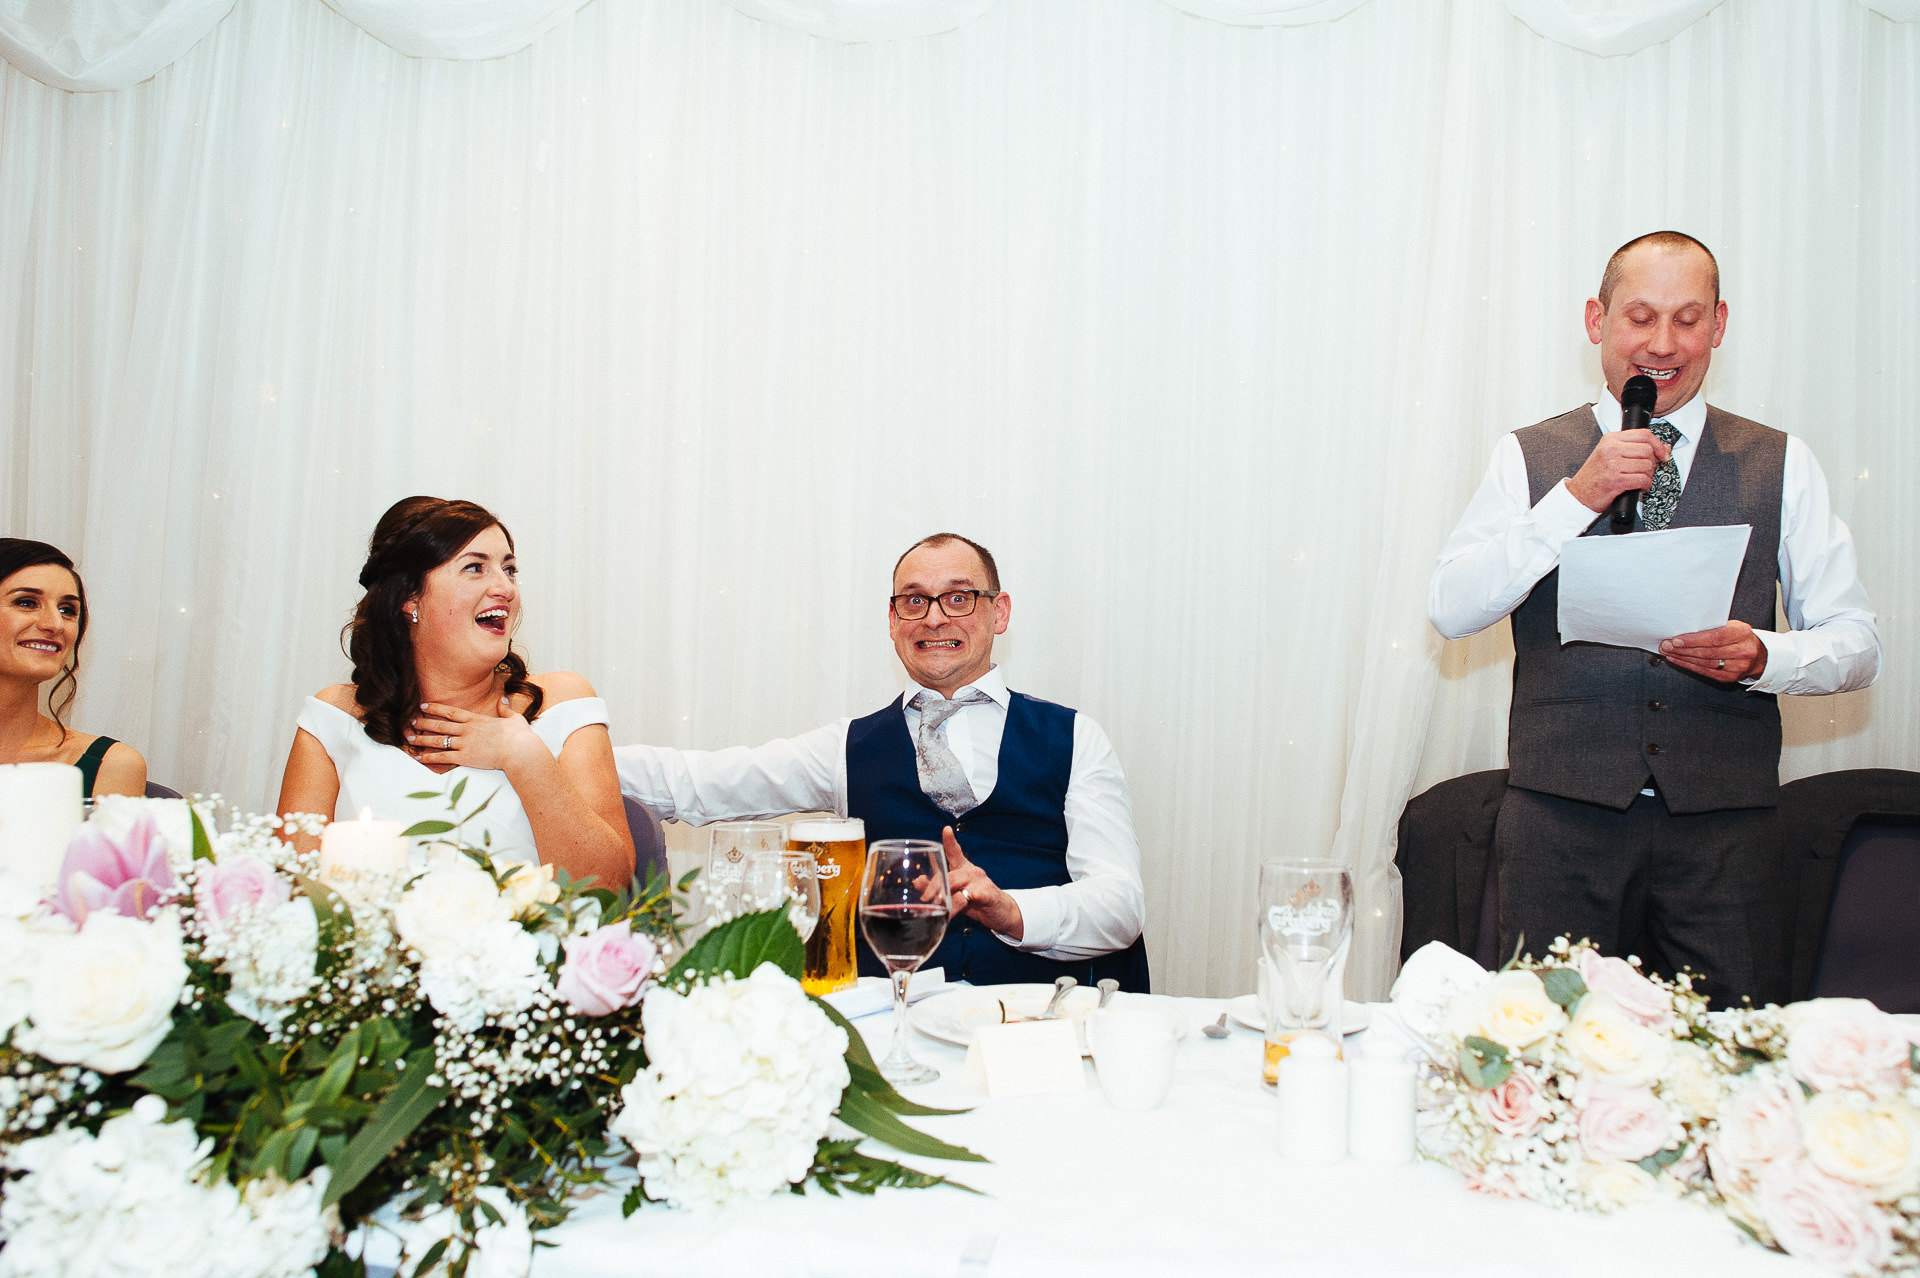 candid moment of best man drinking champagne from the bottle in bright sunshine